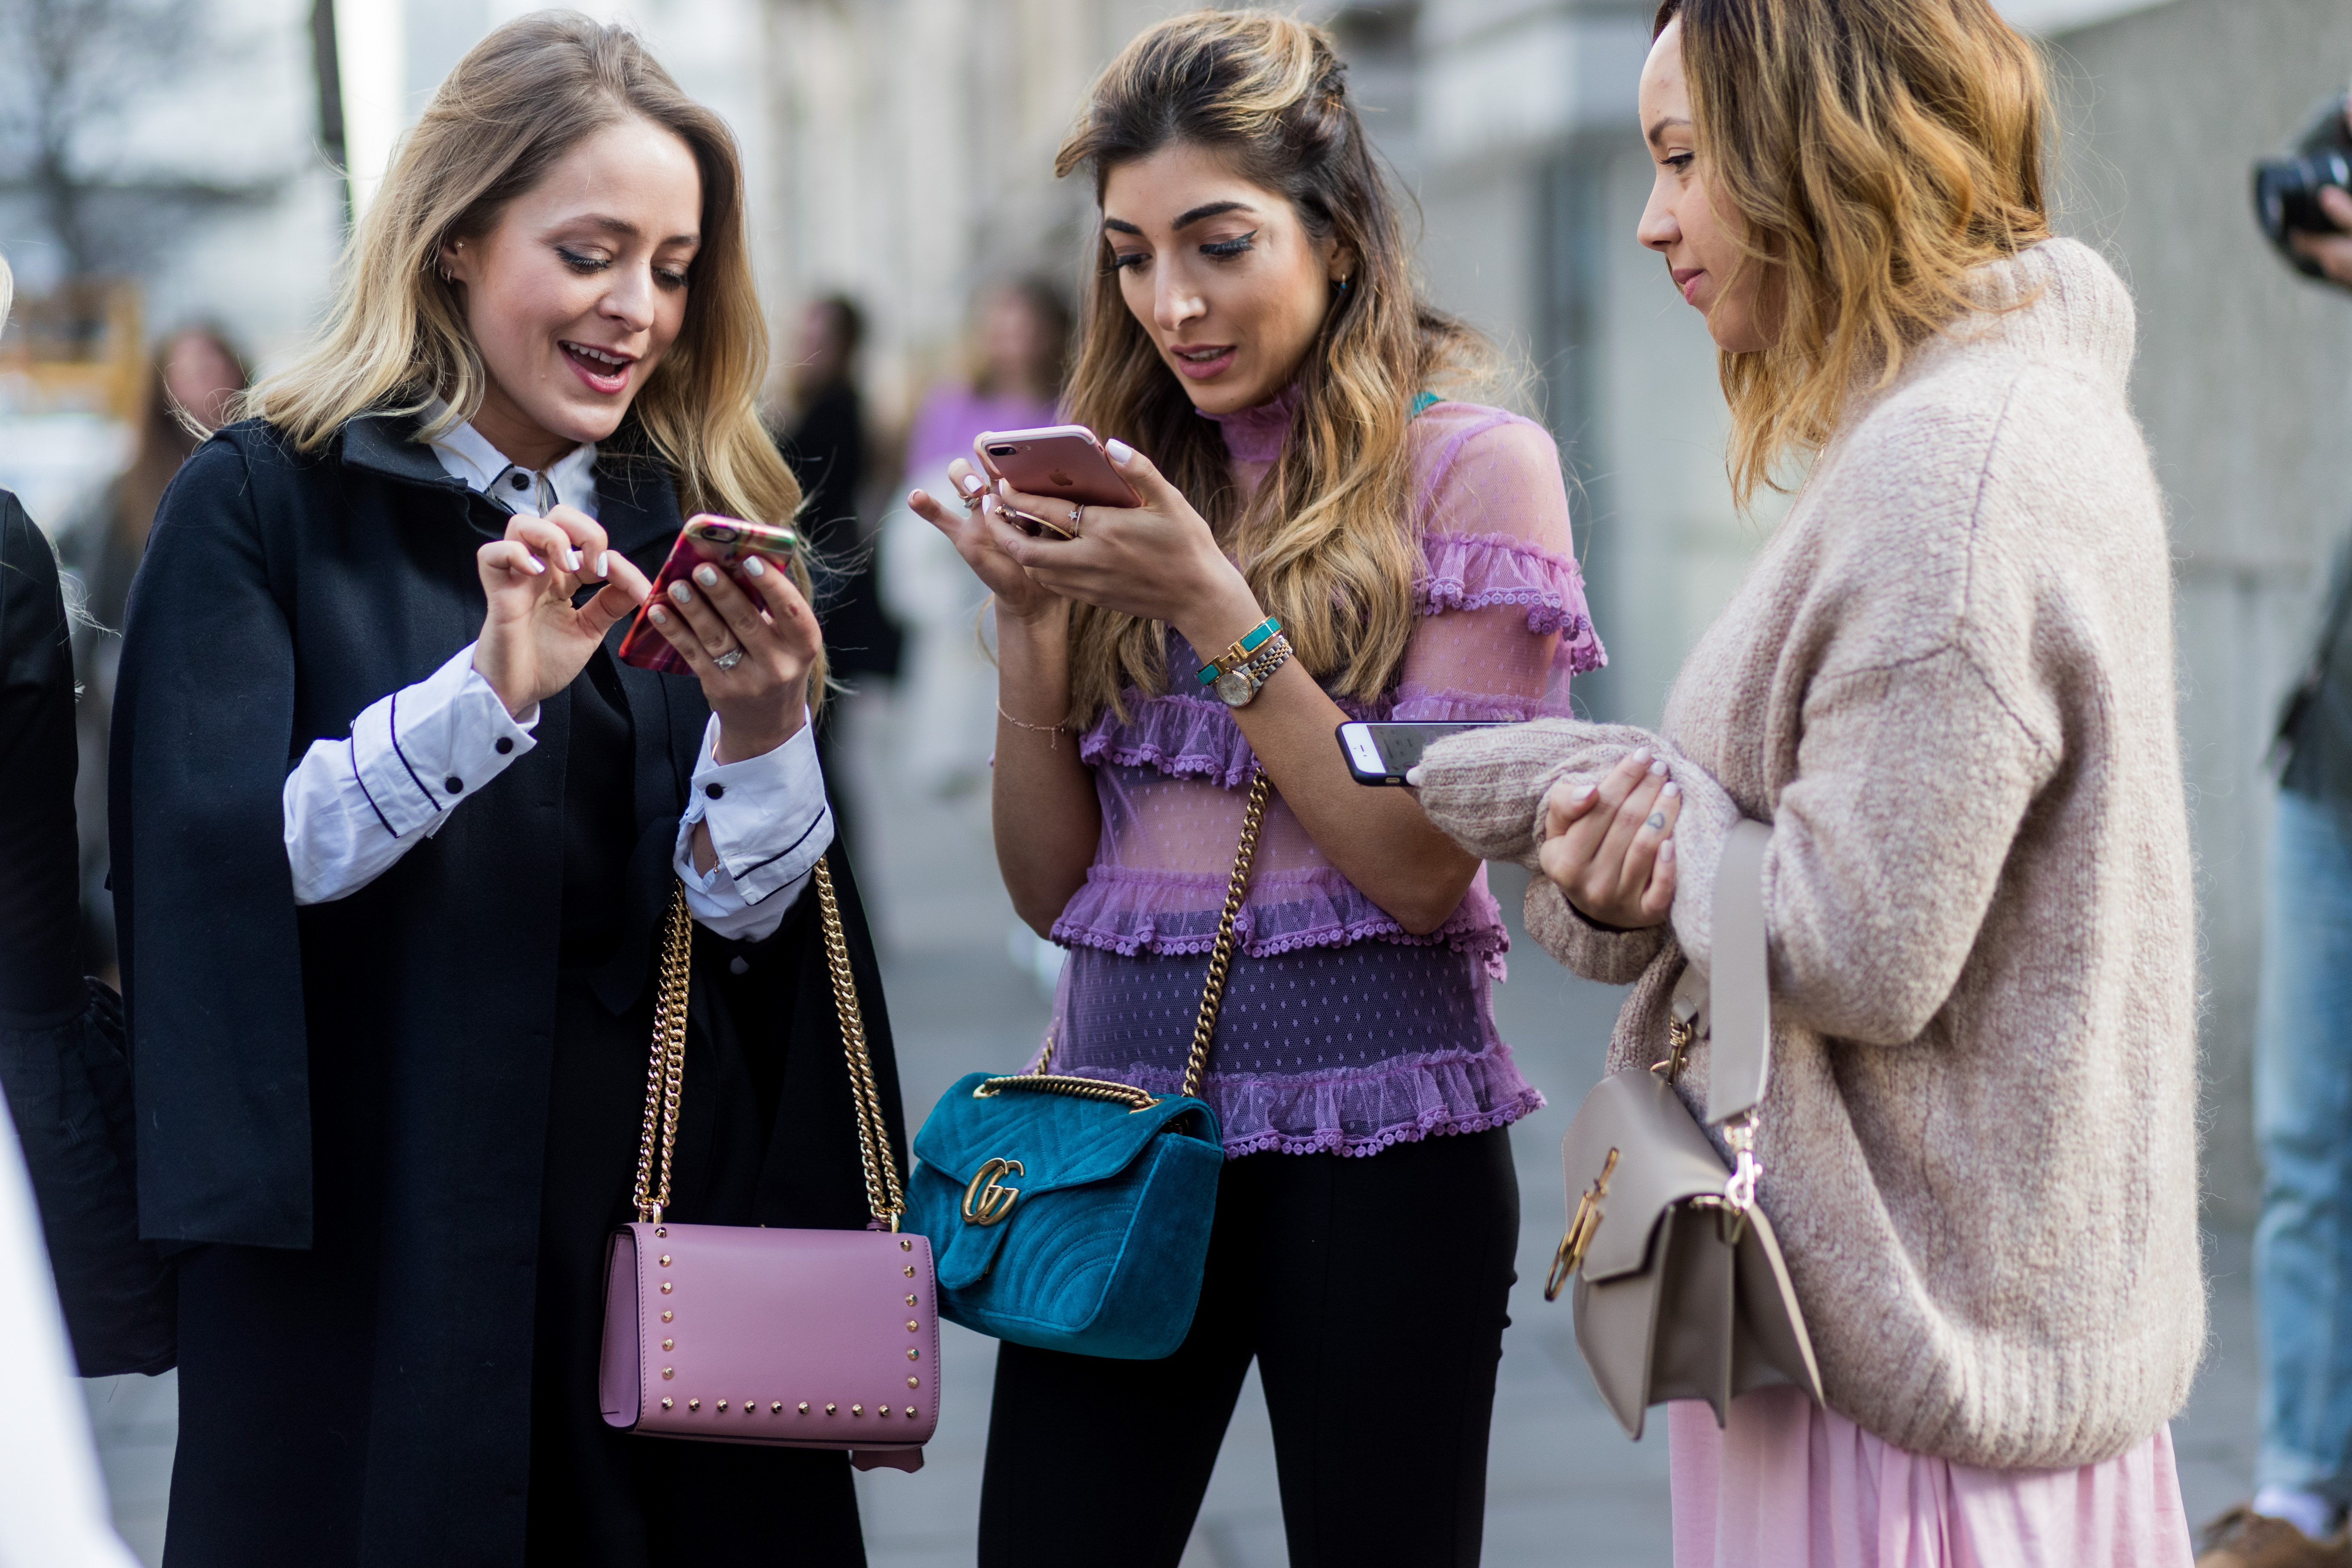 Three women stand on a street in London, interacting with their phones